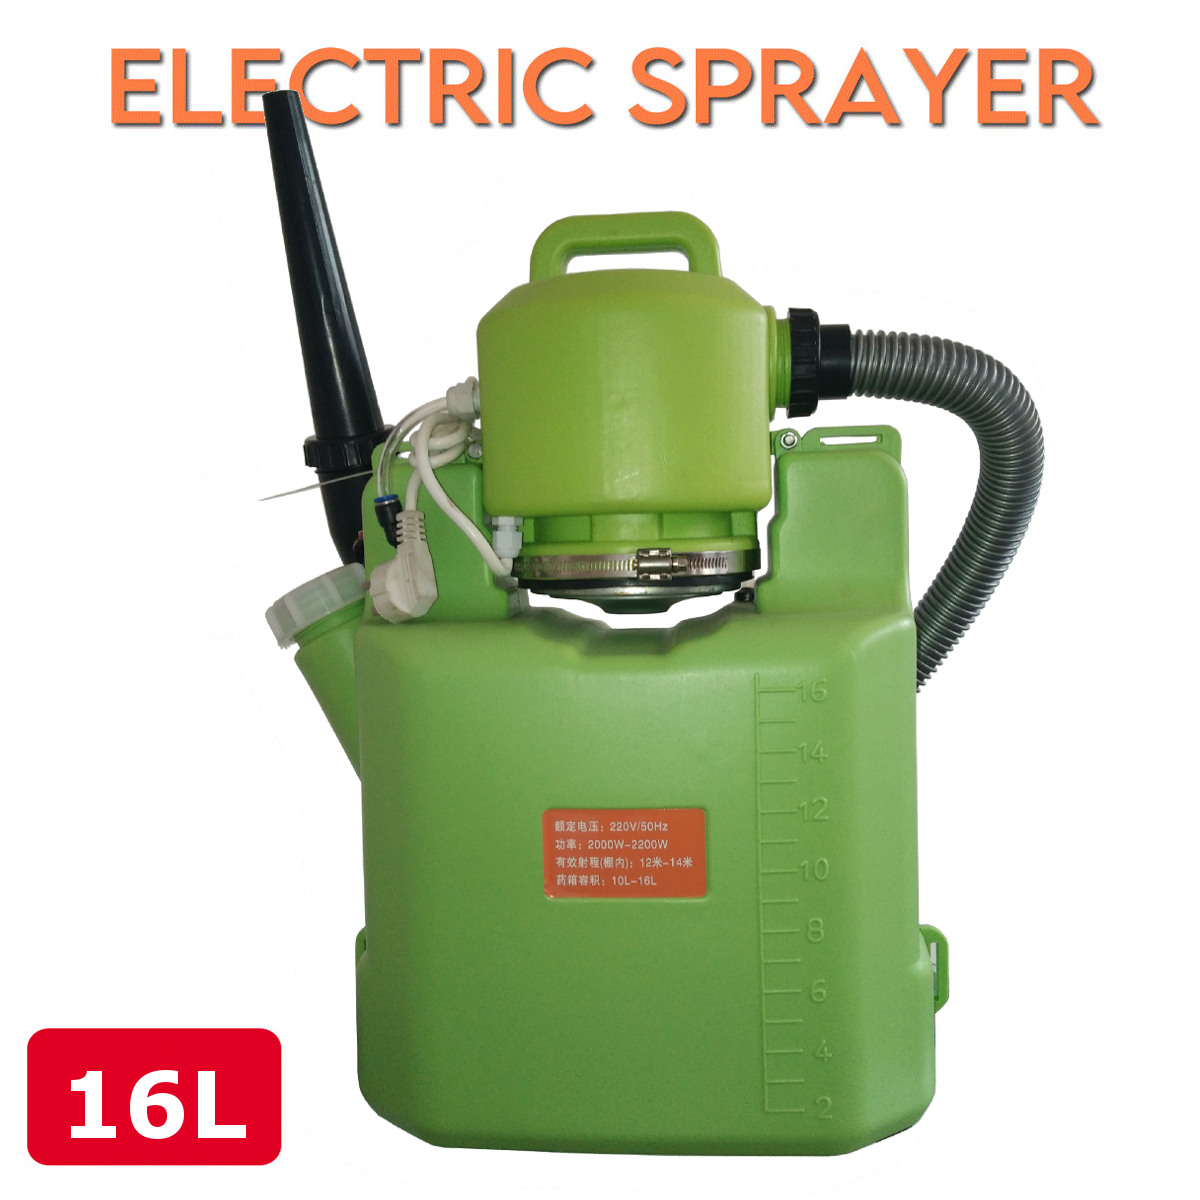 2200W 220V 16L Electric Thermal Fogger Machine Ultra Capacity Disinfection Sprayer For Home Outdoor Safety Insecticide Atomizer